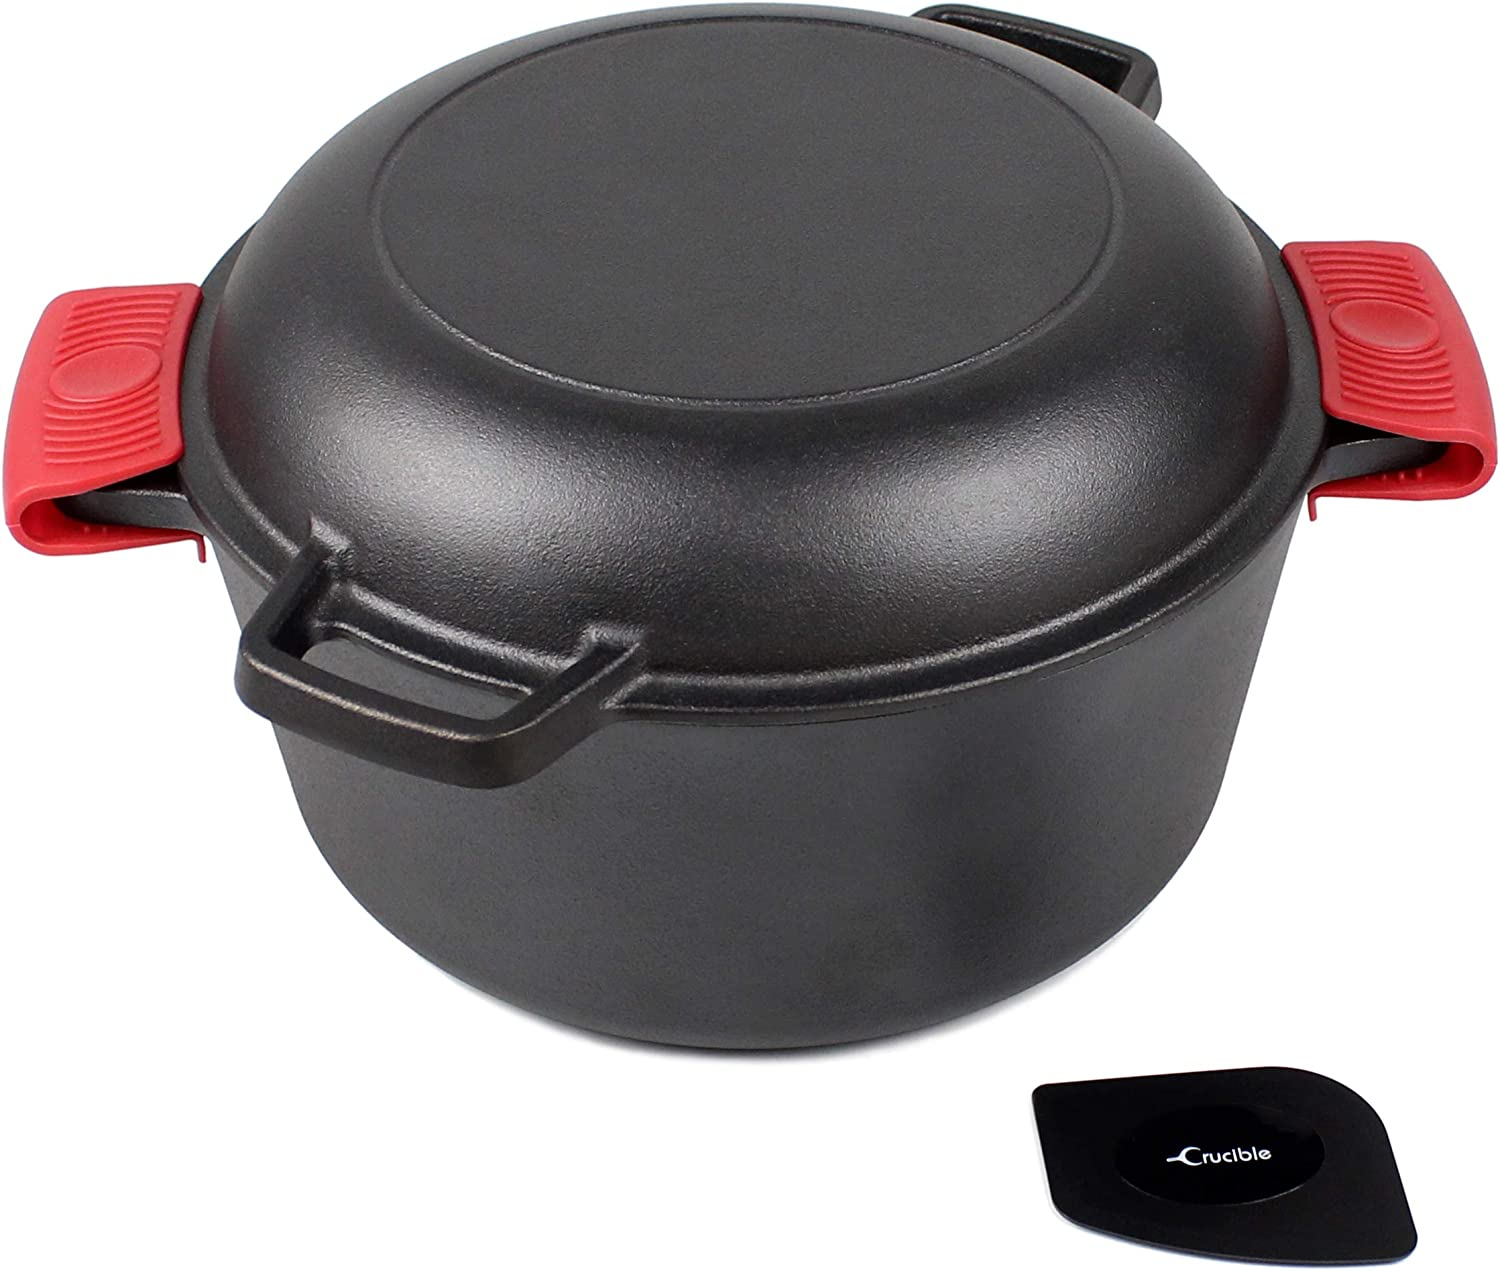 "Cast Iron Dutch Oven with Skillet Lid - 10.23"" diameter, 5 qt - Multi Cooker Stock Pot For Frying, Cooking, Baking & Broiling + 2 silicone potholders"